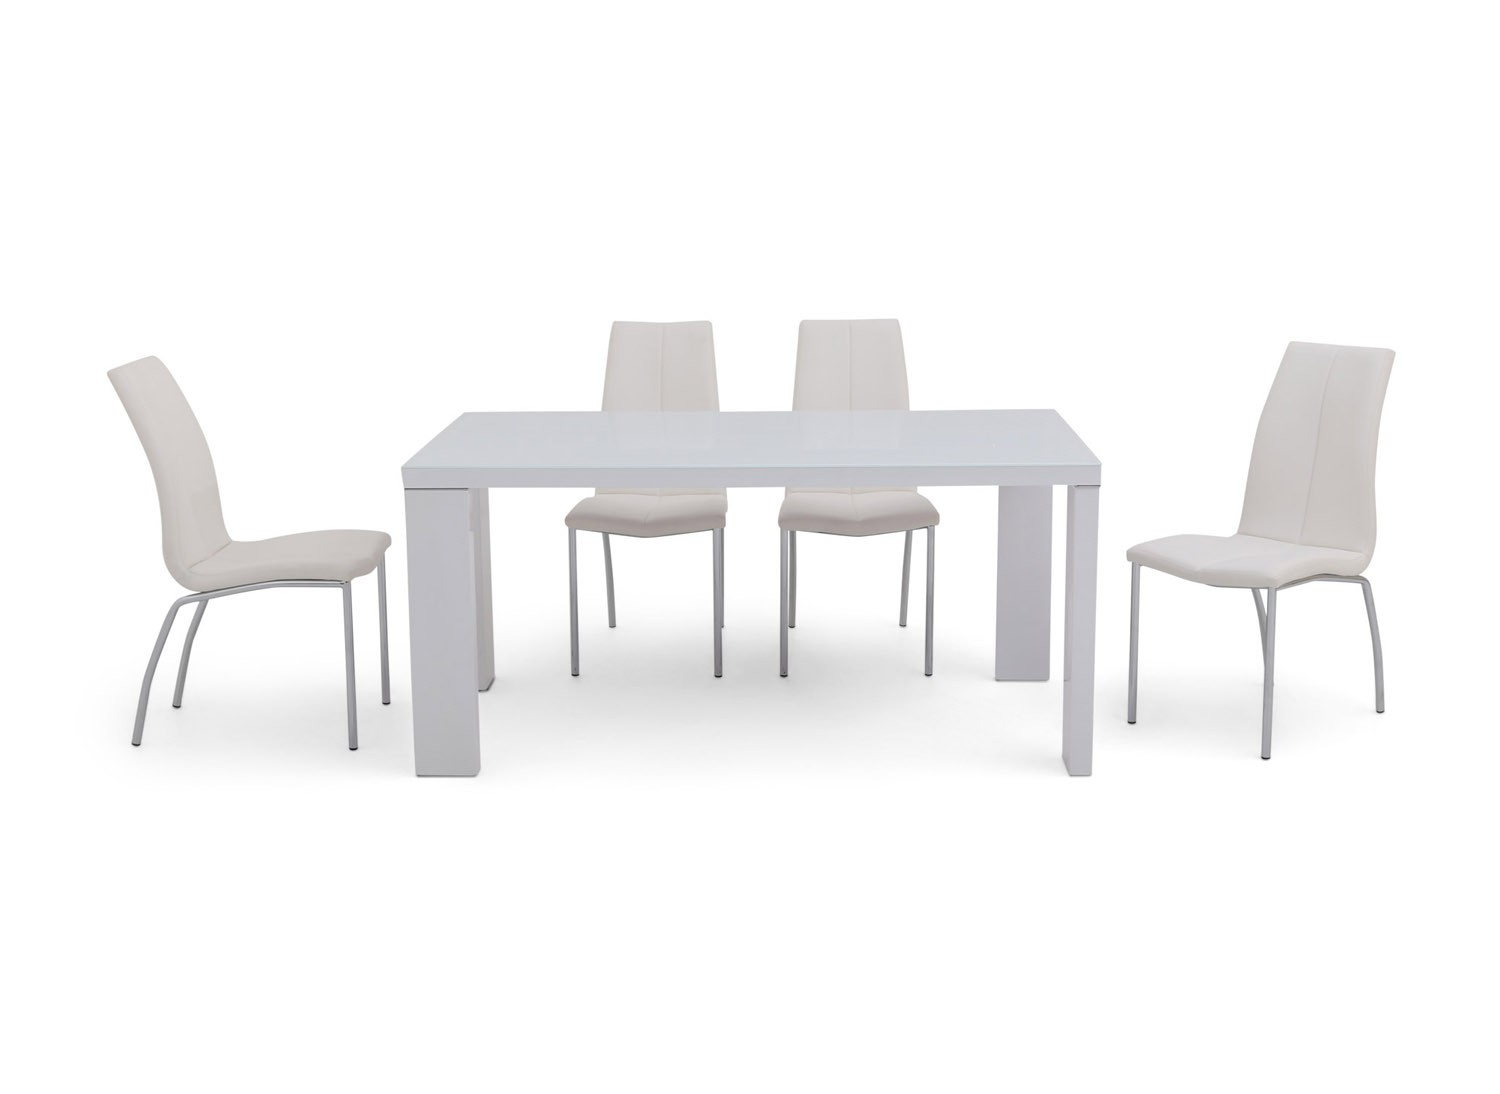 https://www.firstfurniture.co.uk/pub/media/catalog/product/f/a/fairmont_lucca_white_high_gloss_dining_table_6_ava_black_chairs_2.jpg